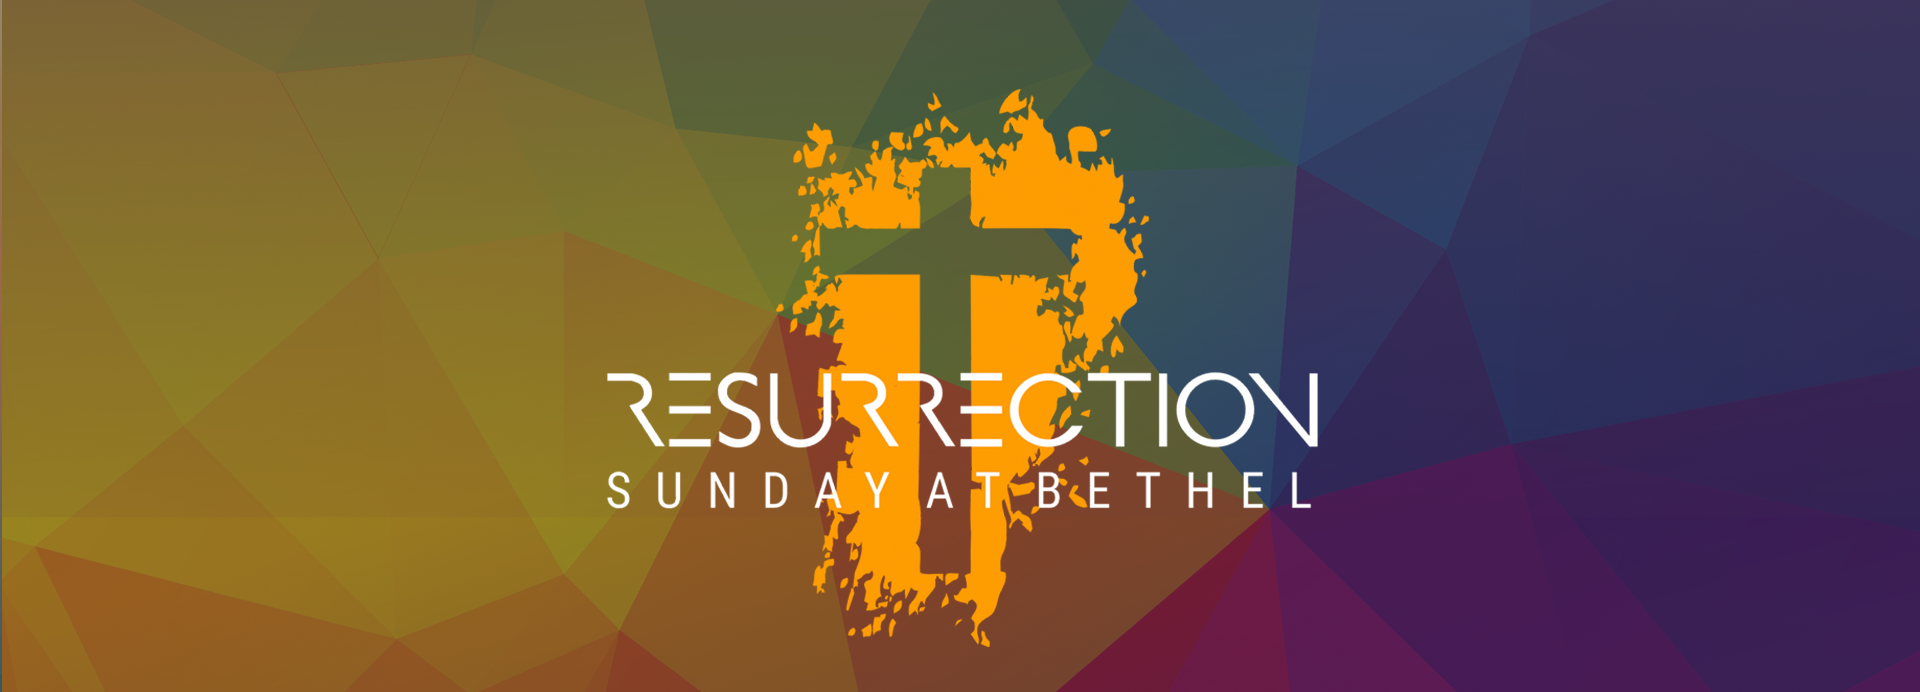 resurrection sunday 2018_app_banner.png